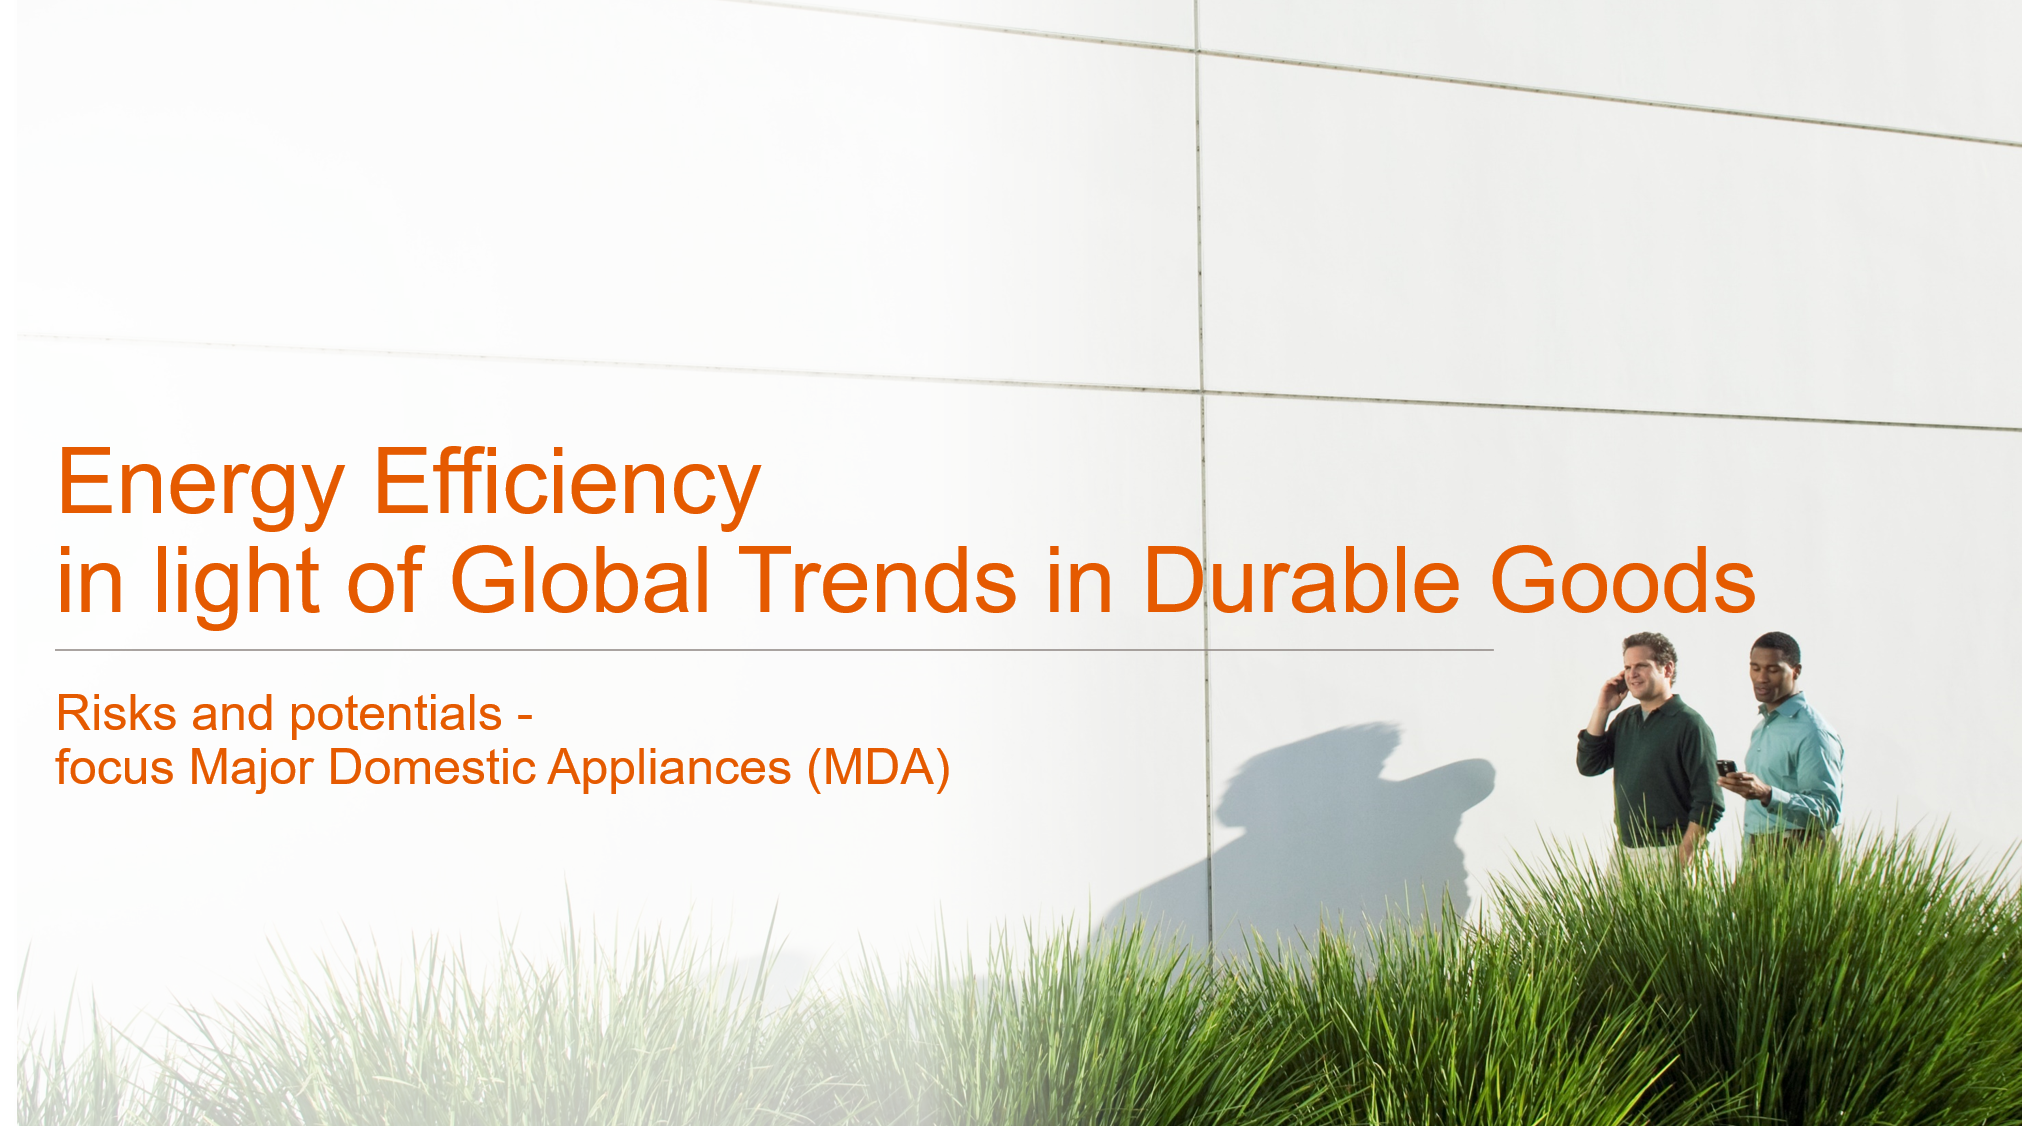 Energy efficiency in light of Global Trends in Durable Goods